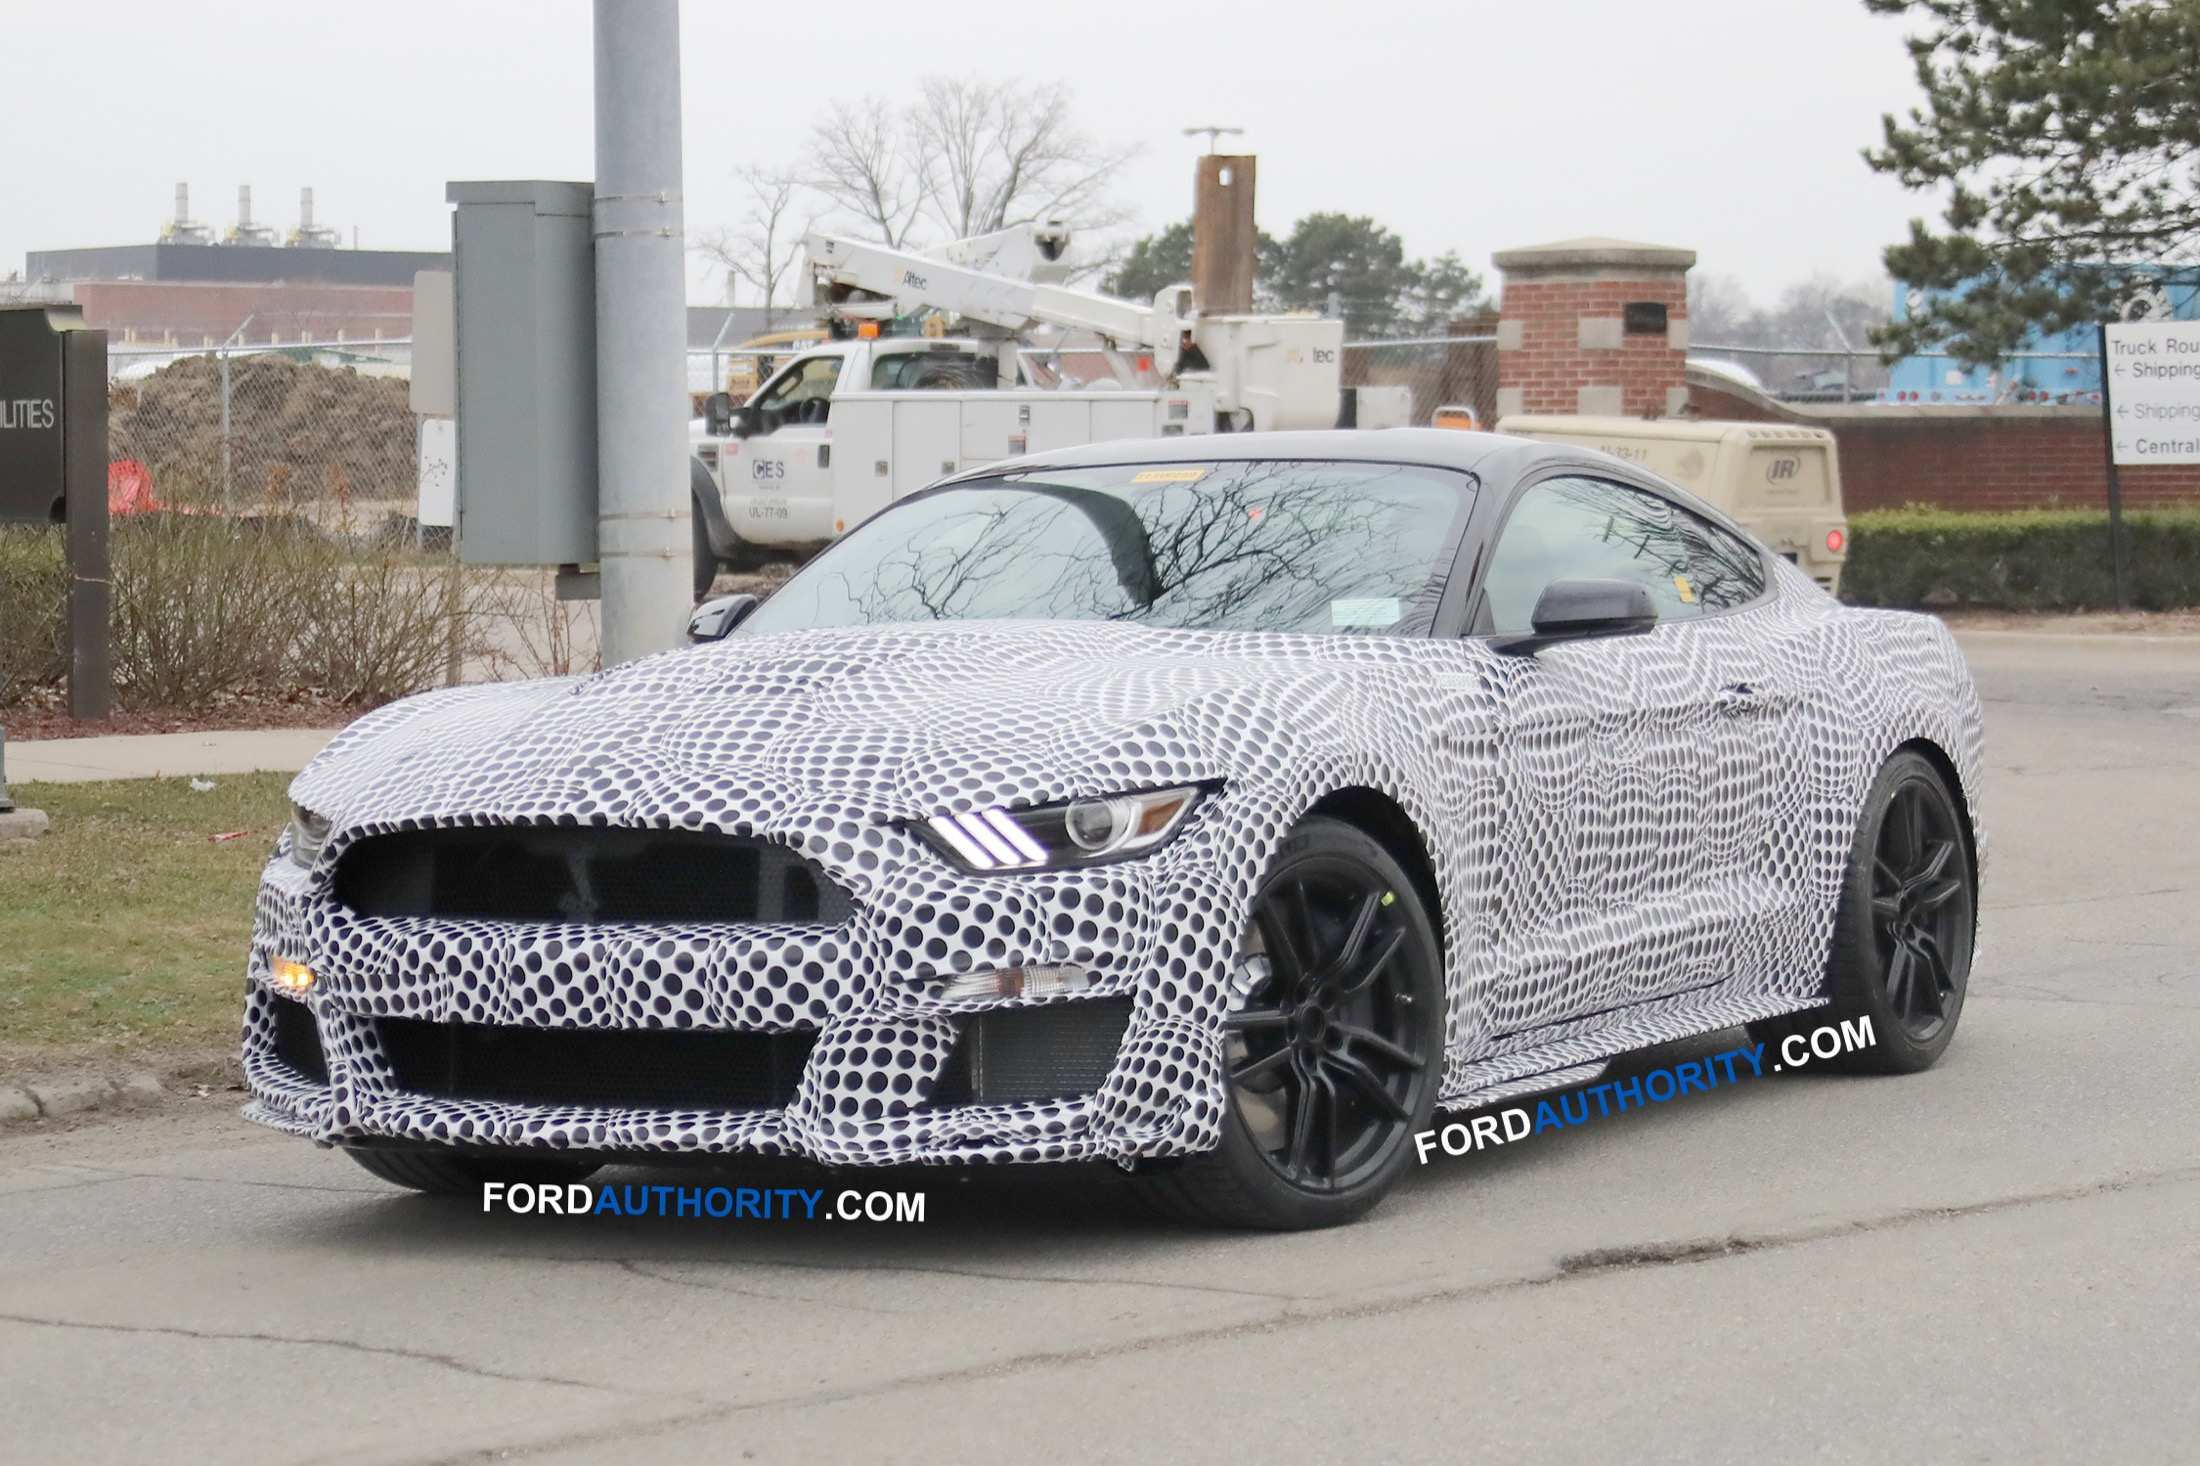 83 Gallery of 2020 Ford Mustang Gt Exterior for 2020 Ford Mustang Gt